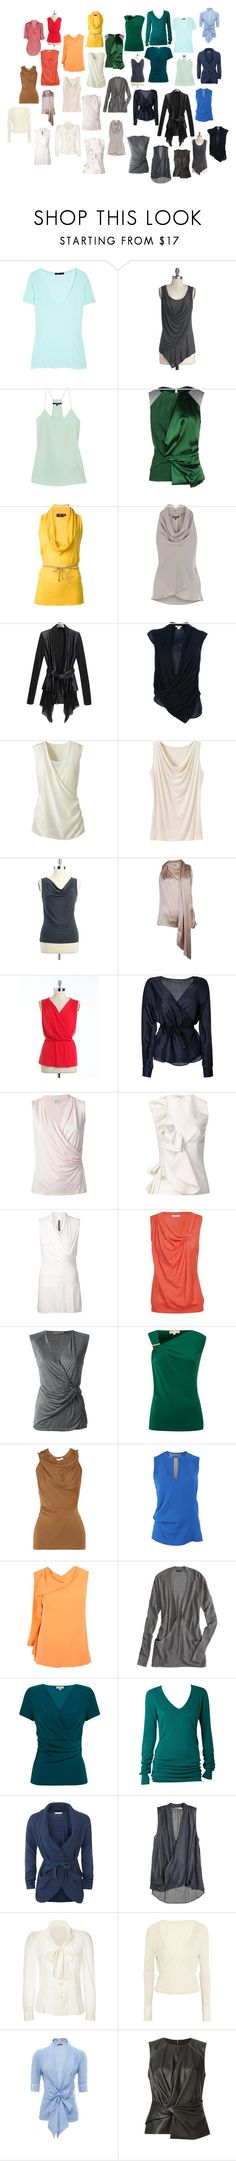 Bright Spring Soft Dramatic tops? by ketutar on Polyvore featuring RED Valentino, Maison Margiela, American Eagle Outfitters, Only Limitless, Roksanda Ilincic, Kaliko, Alexander McQueen, Bassike, Viktor & Rolf and Rick Owens Lilies